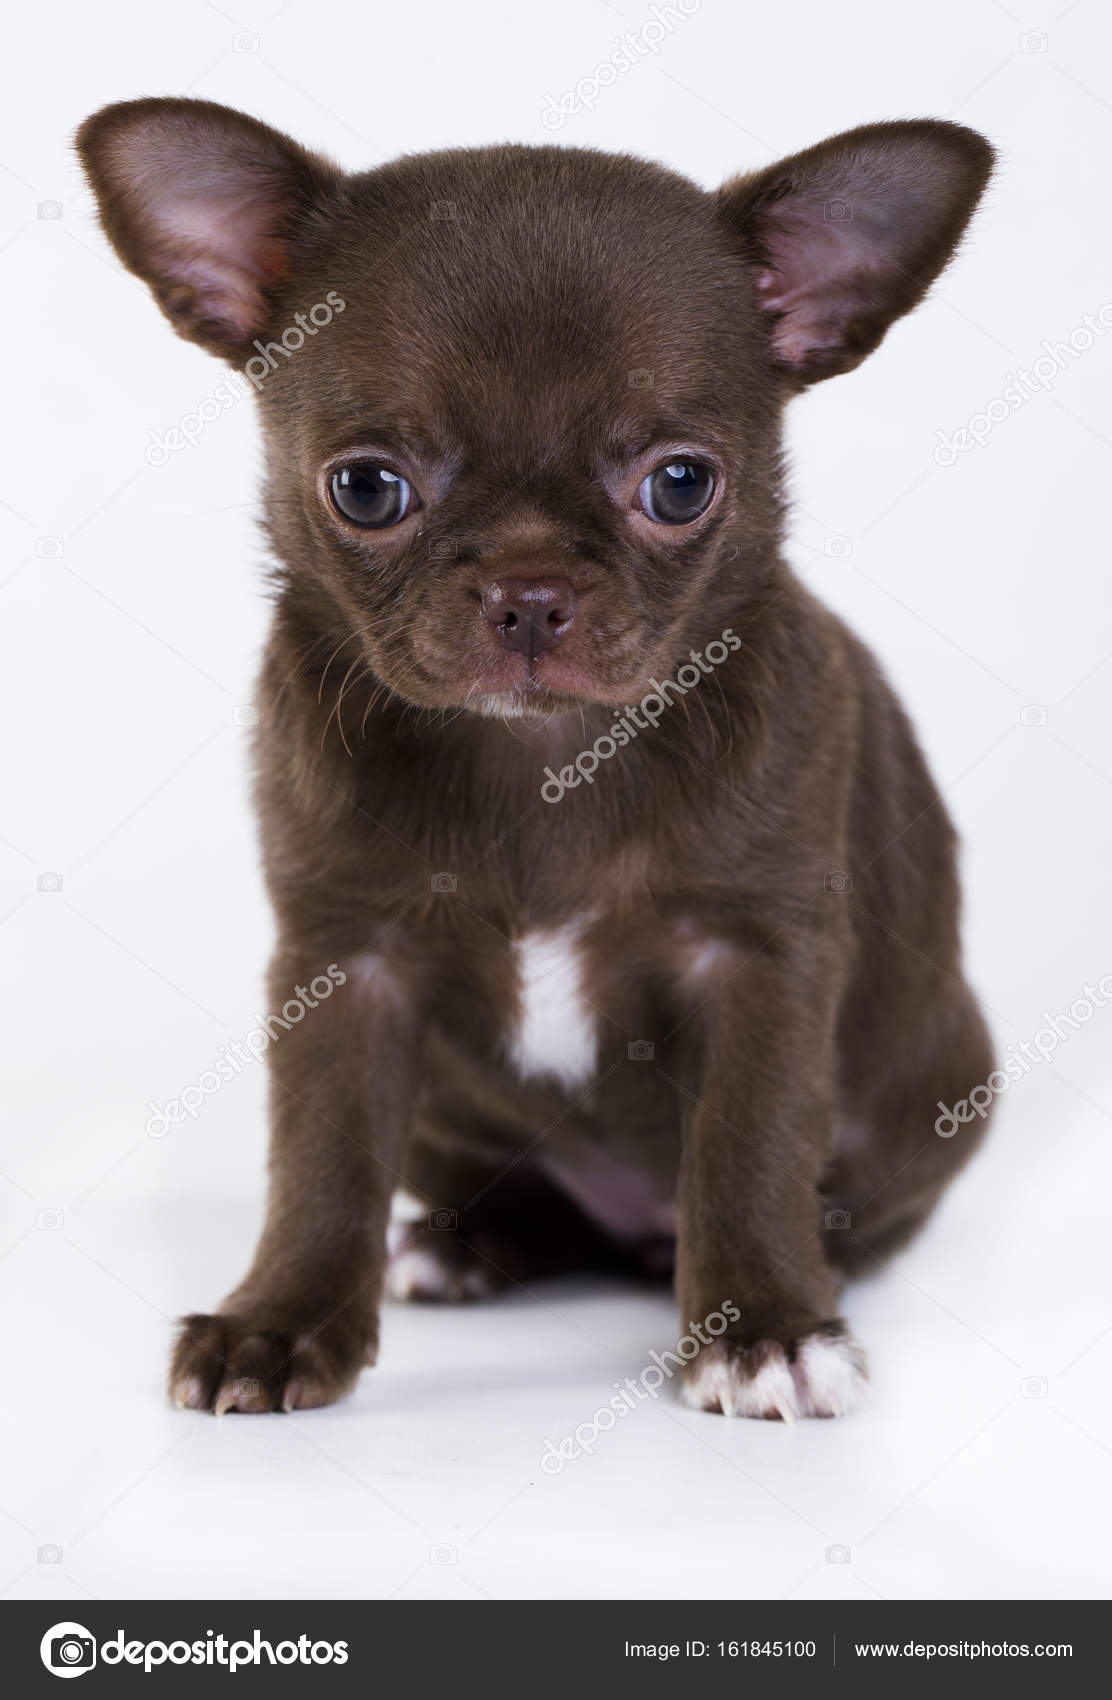 Brown Baby Chihuahuas Chihuahua Puppy Of Brown Color Stock Photo C Lilun Li 161845100